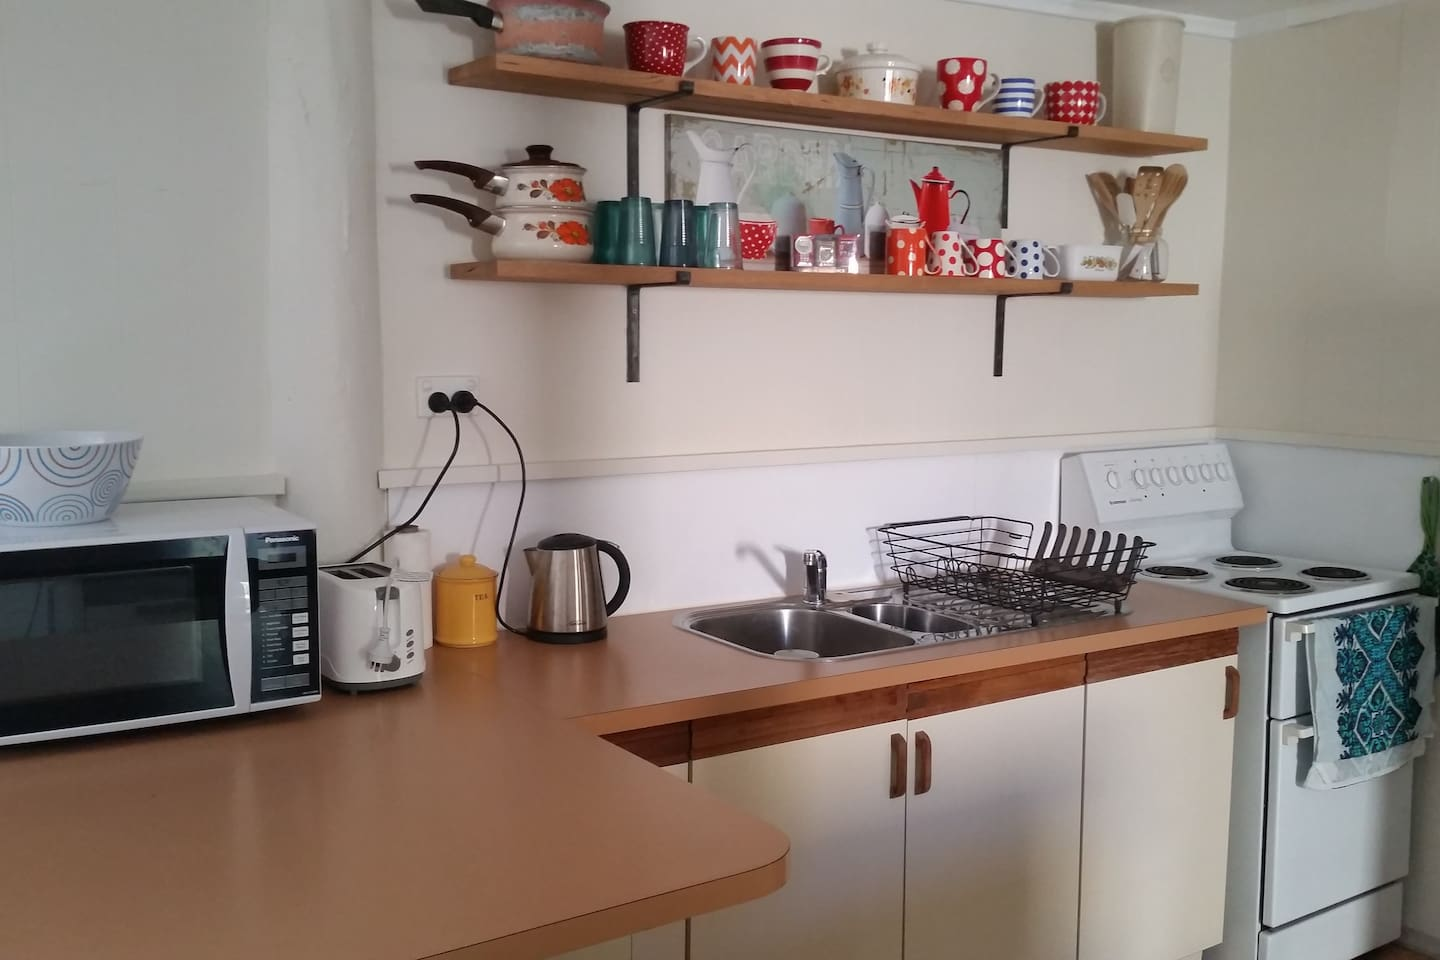 Fully functional kitchen. Microwave, stove with oven, cuttlery, pots and pans, full size fridge....tea/coffee amenities